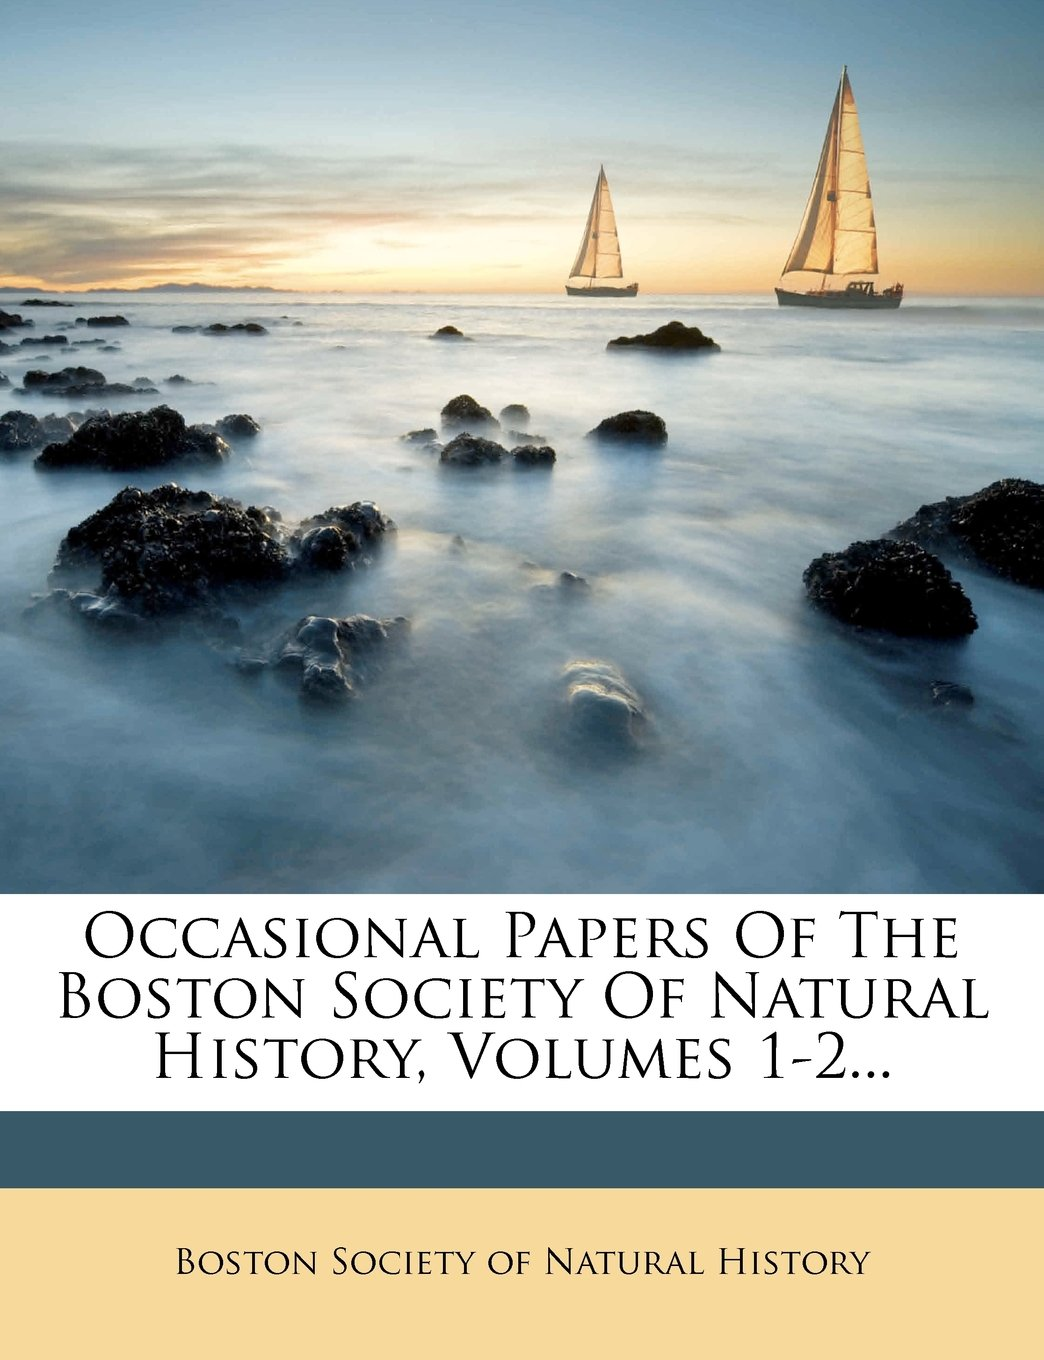 Occasional Papers Of The Boston Society Of Natural History, Volumes 1-2... ebook